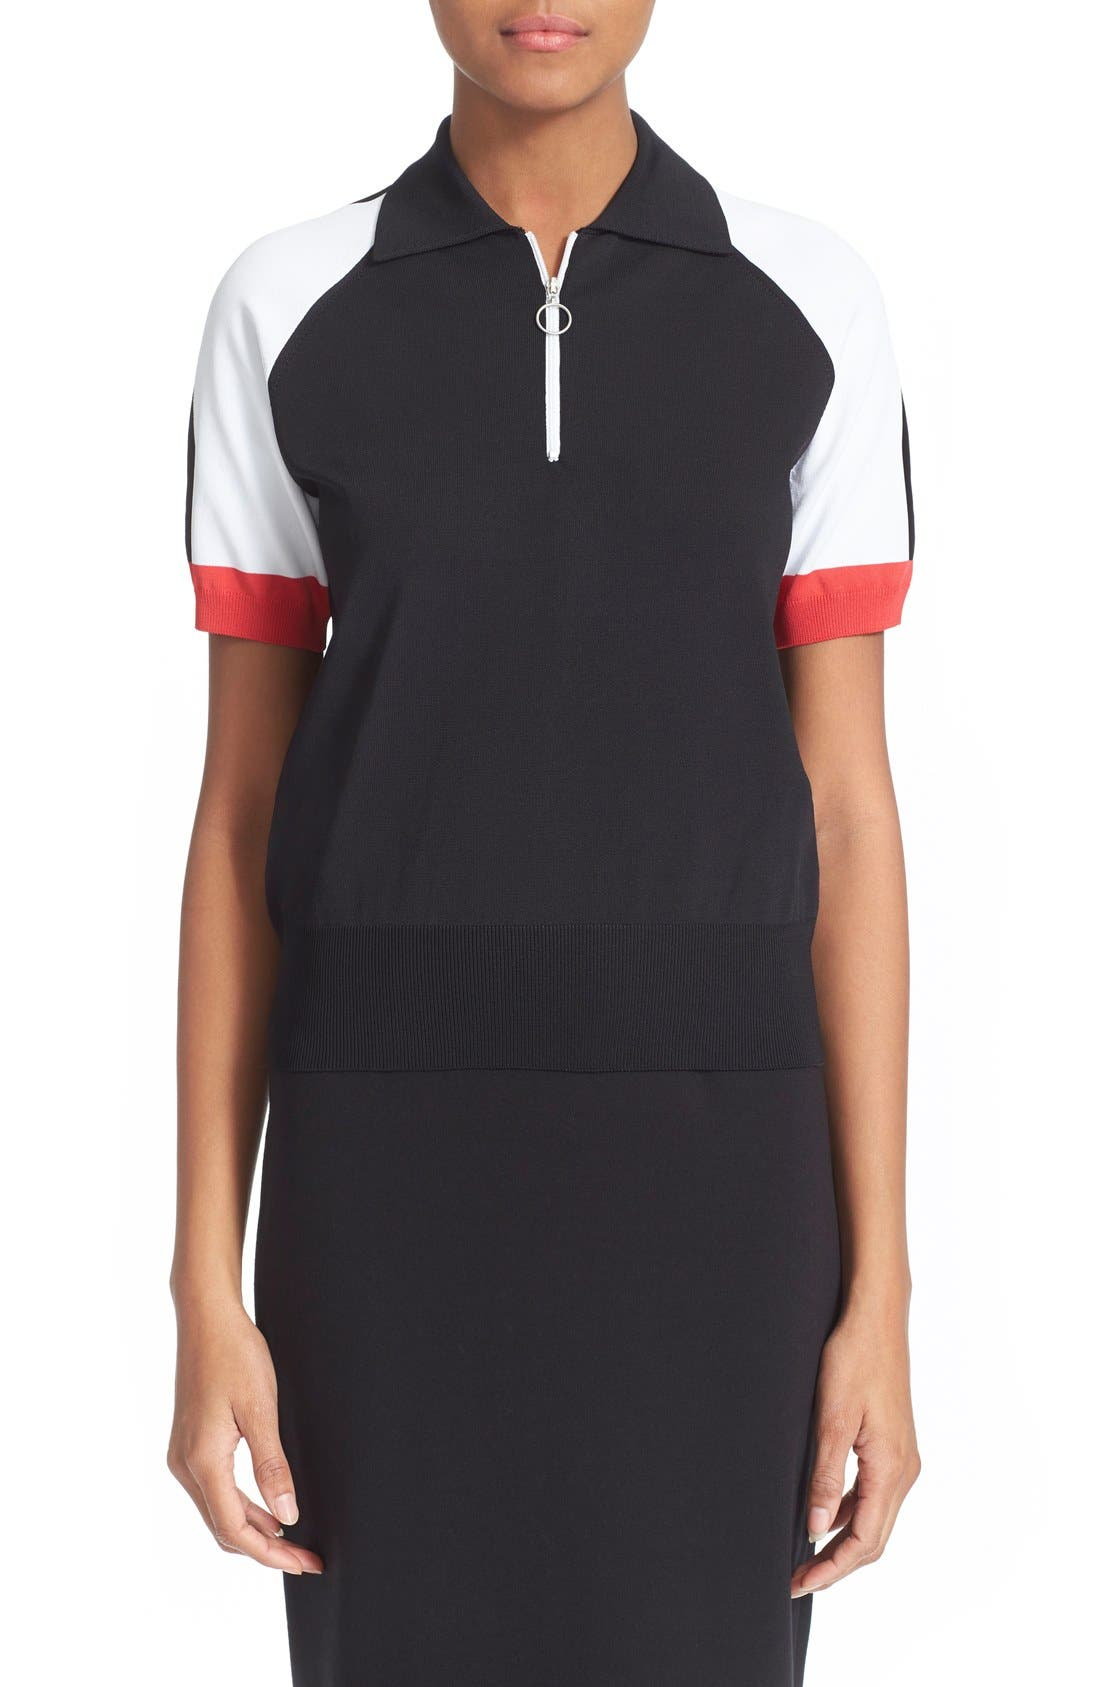 Main Image - T by Alexander Wang Colorblock Jersey Polo Top